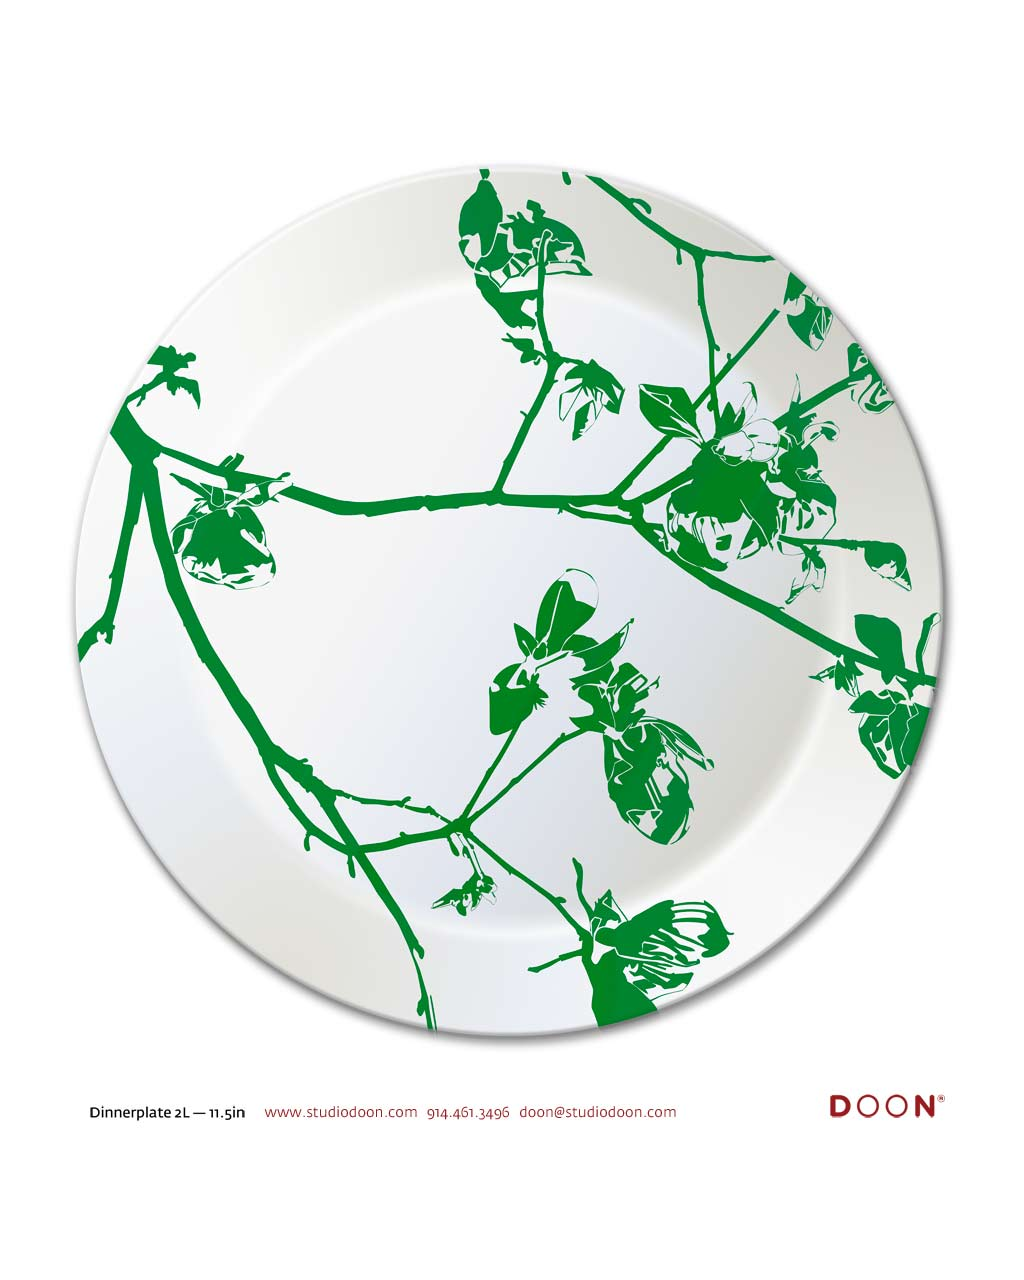 Dinnerplate_2L@0